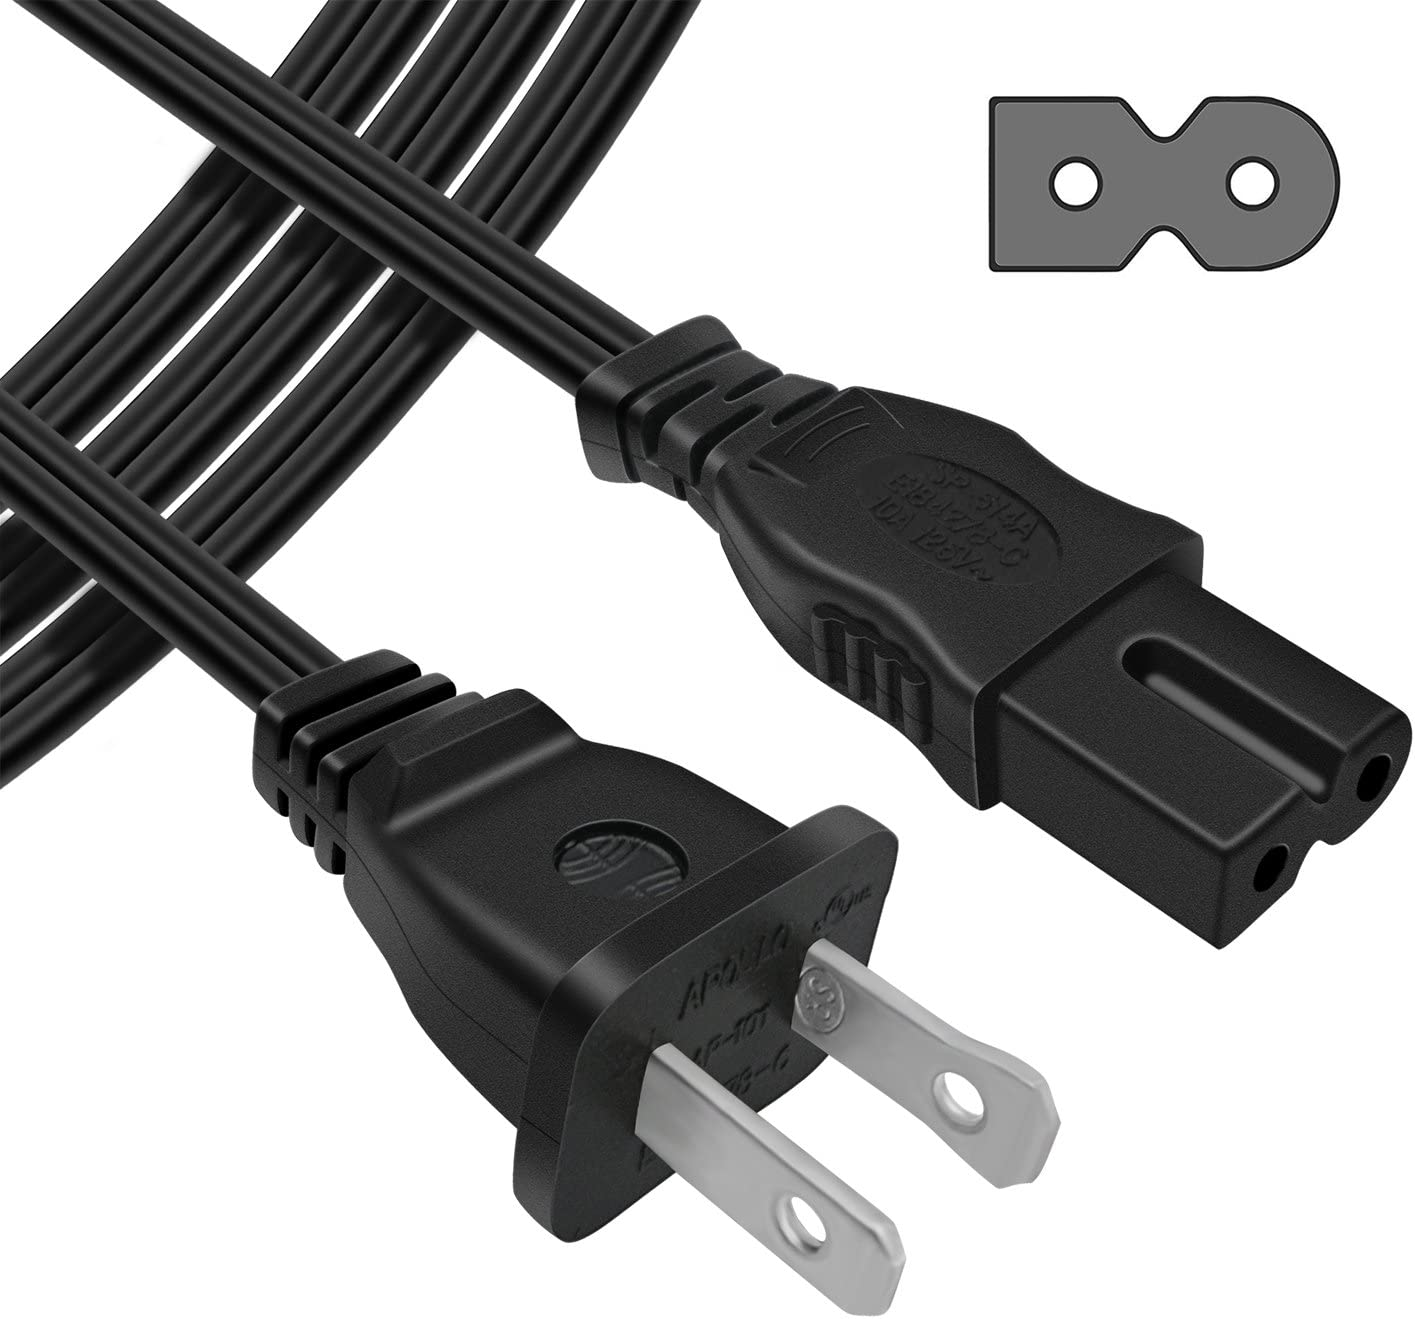 POWSEED 6Ft 2 Prong Polarized AC Wall Power Cable Cord Plug for Sony PlayStation 1 2 PS1 PS2 Vizio Sharp Sanyo Emerson TV UL Listed Bose Companion 3 5 Multimedia Speaker System Arris Router Modem